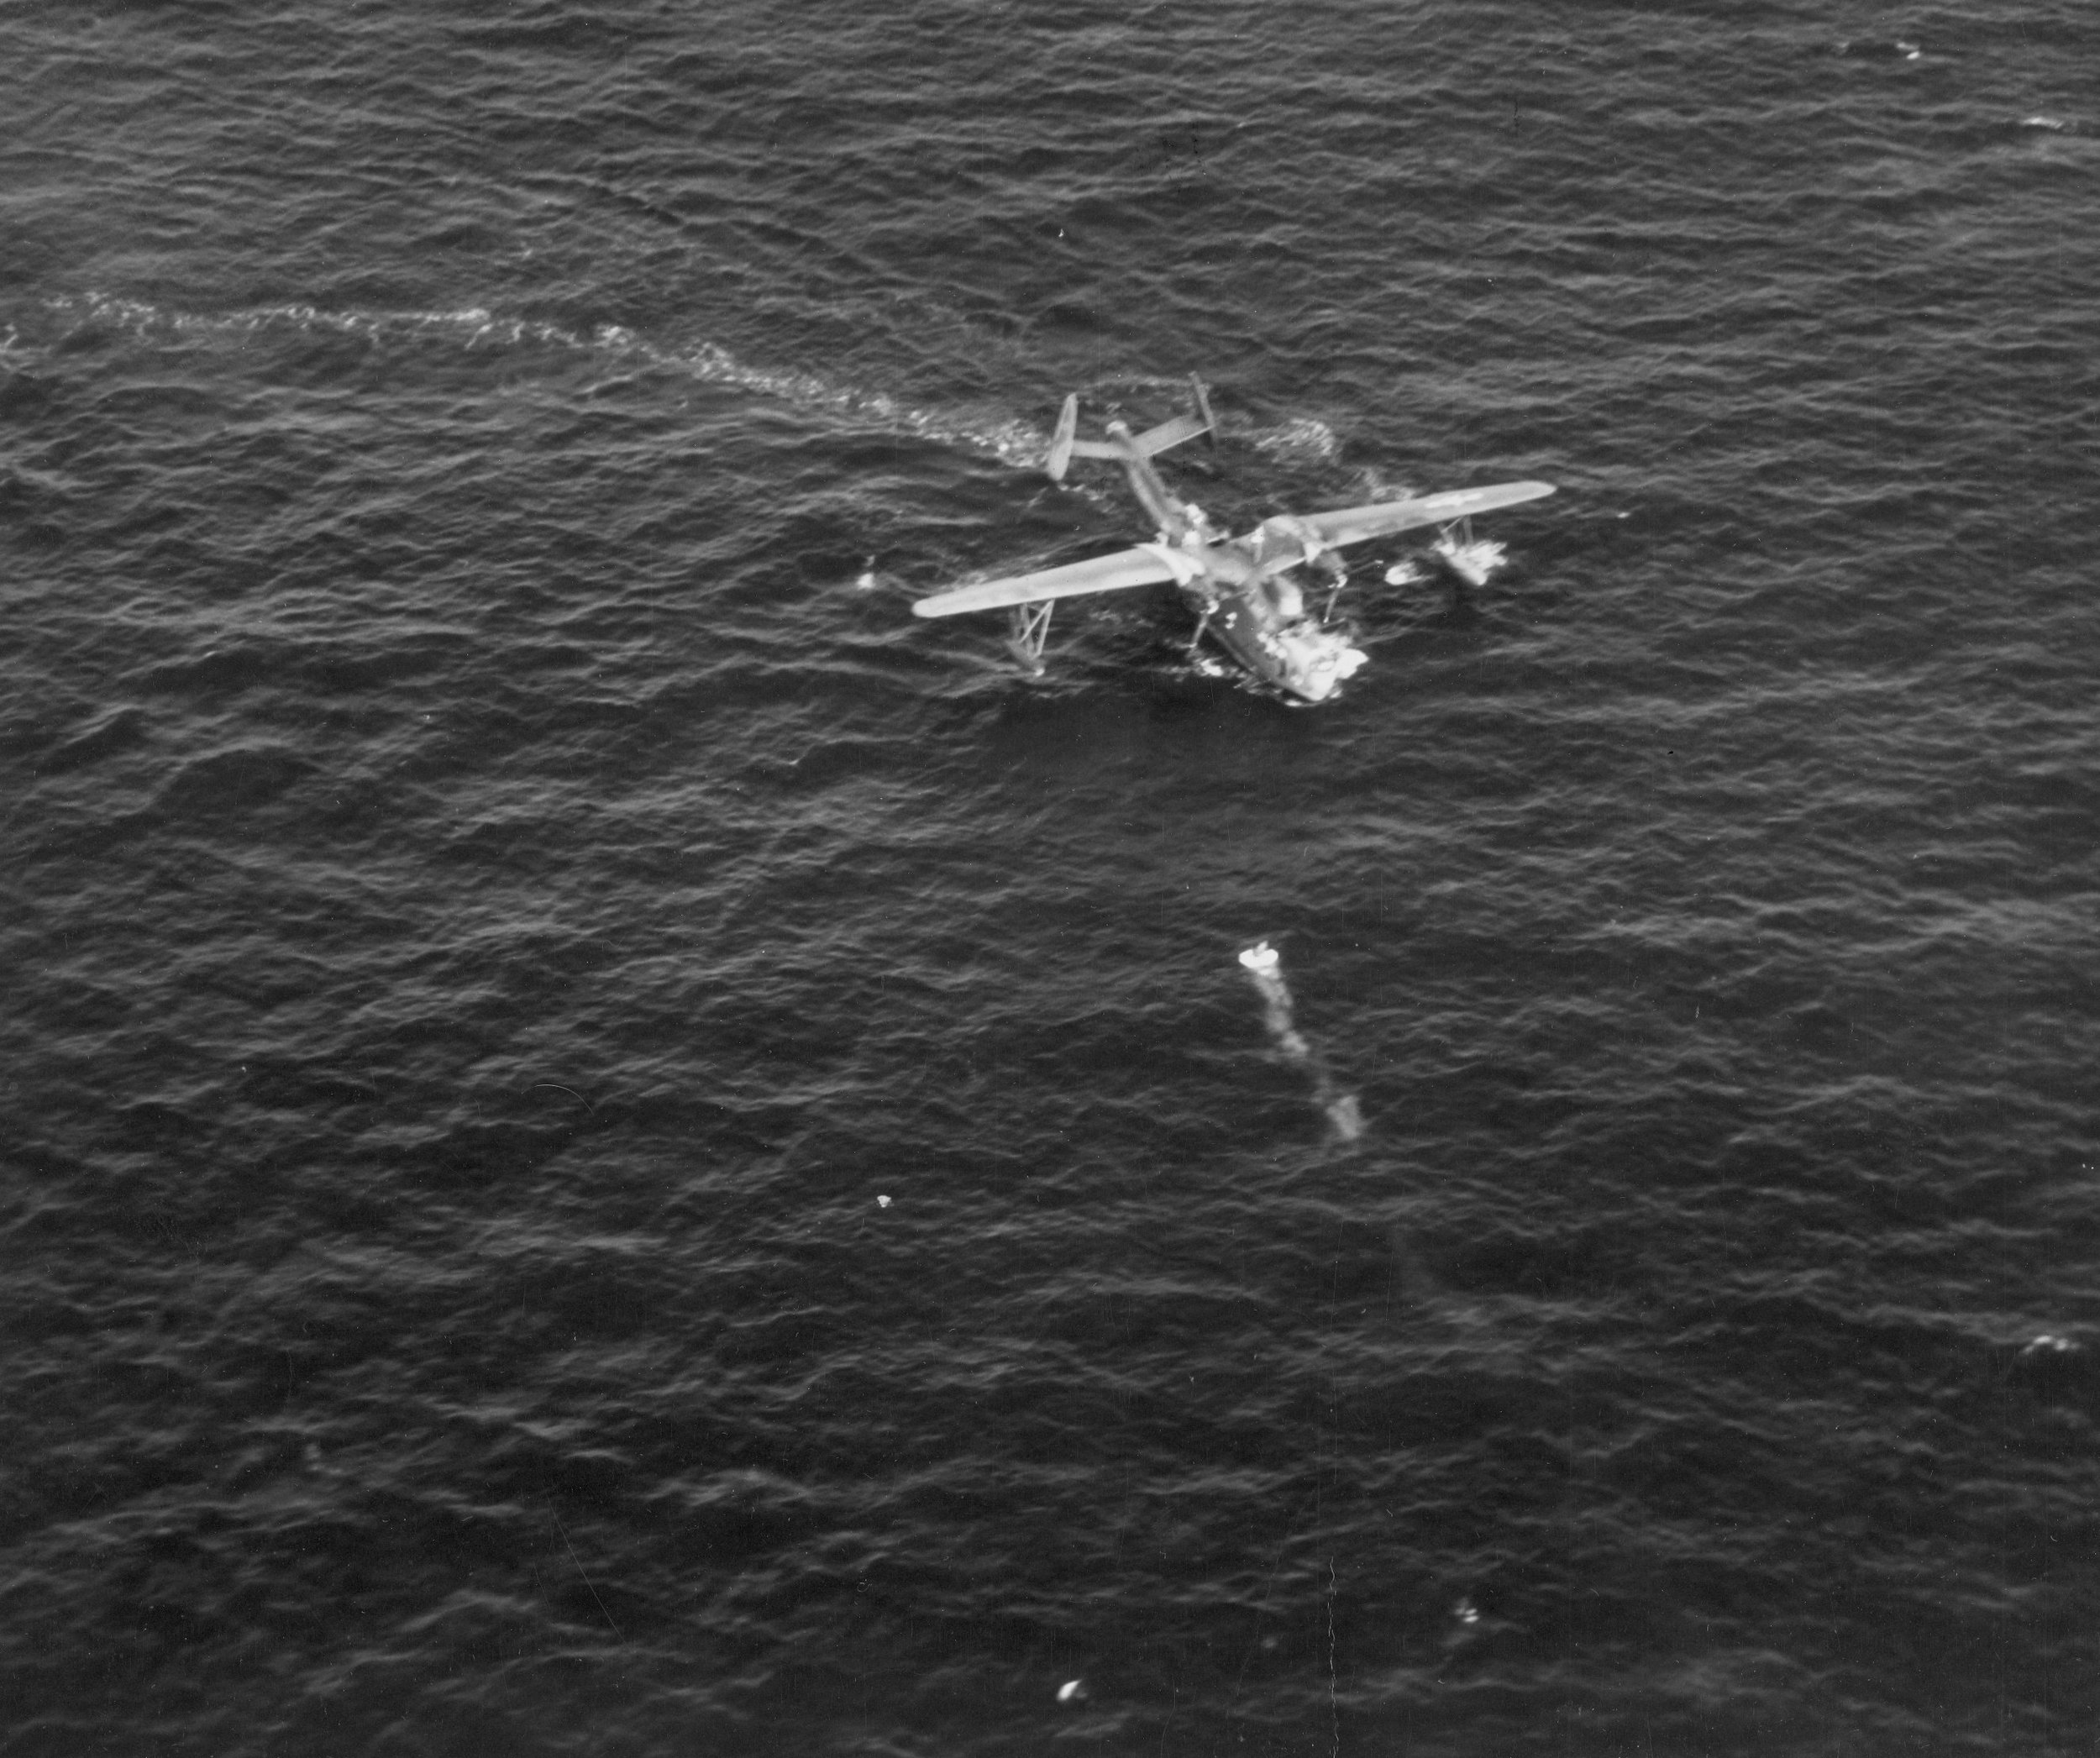 A welcome sight. A PBM Mariner finds a life raft with a pilot. Credit: Lost in the Pacific/National Archives